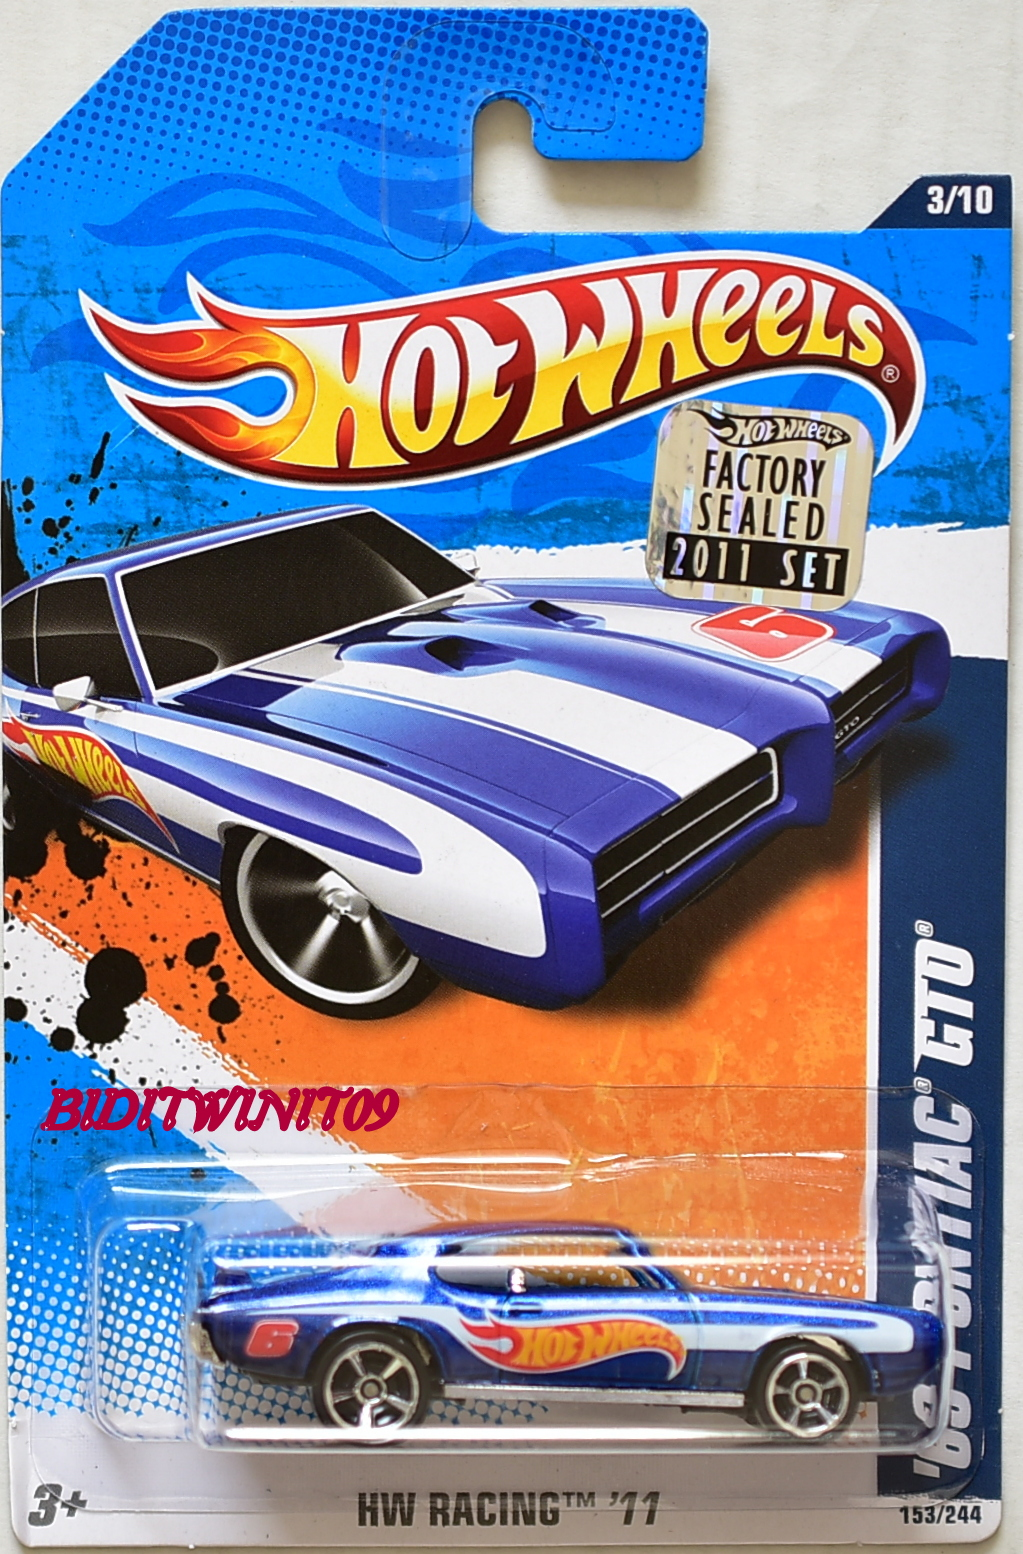 HOT WHEELS 2011 HW RACING '69 PONTIAC GTO BLUE FACTORY SEALED